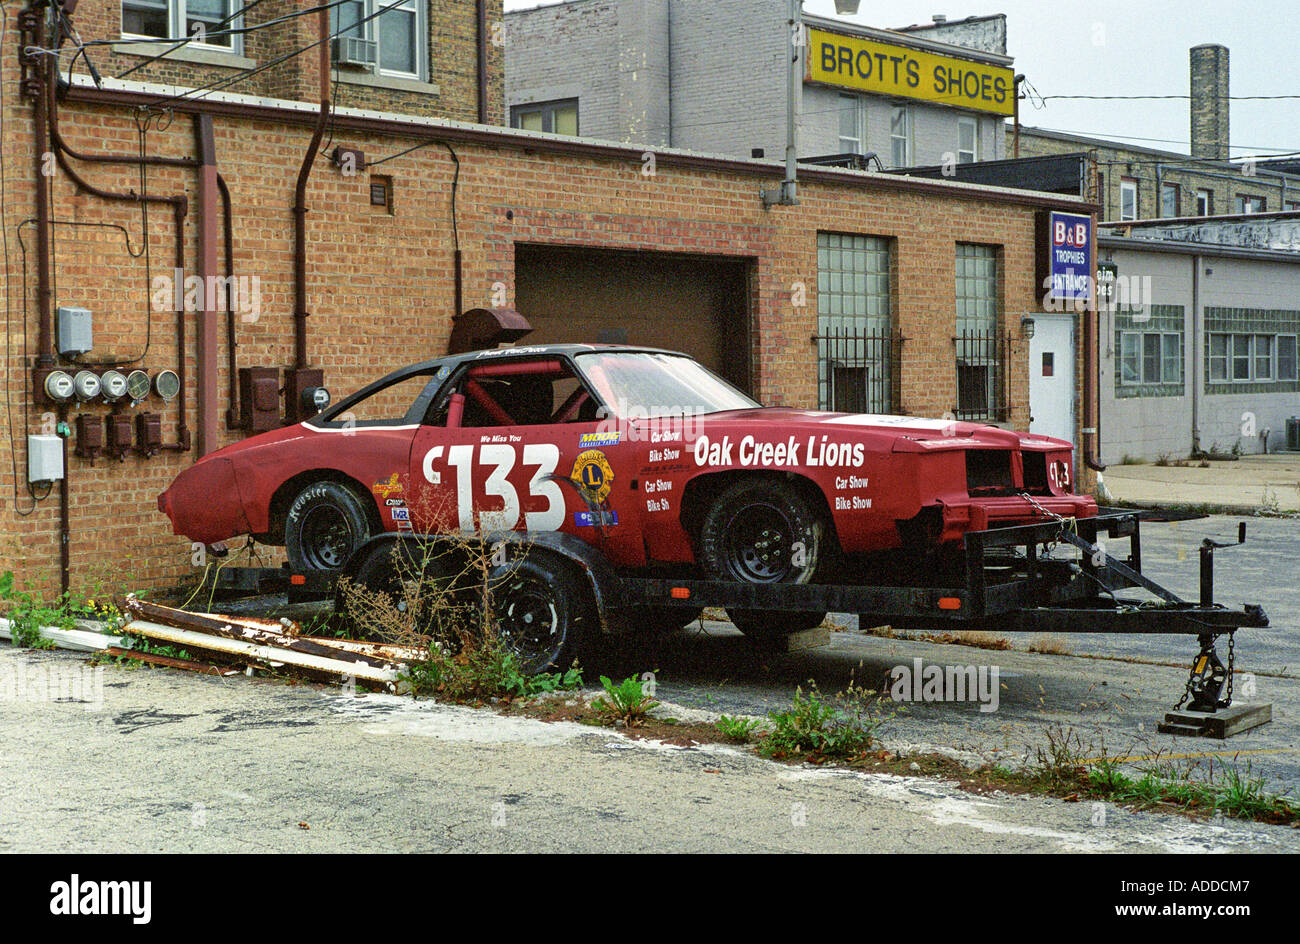 number 133 old race car in alley with rust Stock Photo: 7648838 - Alamy